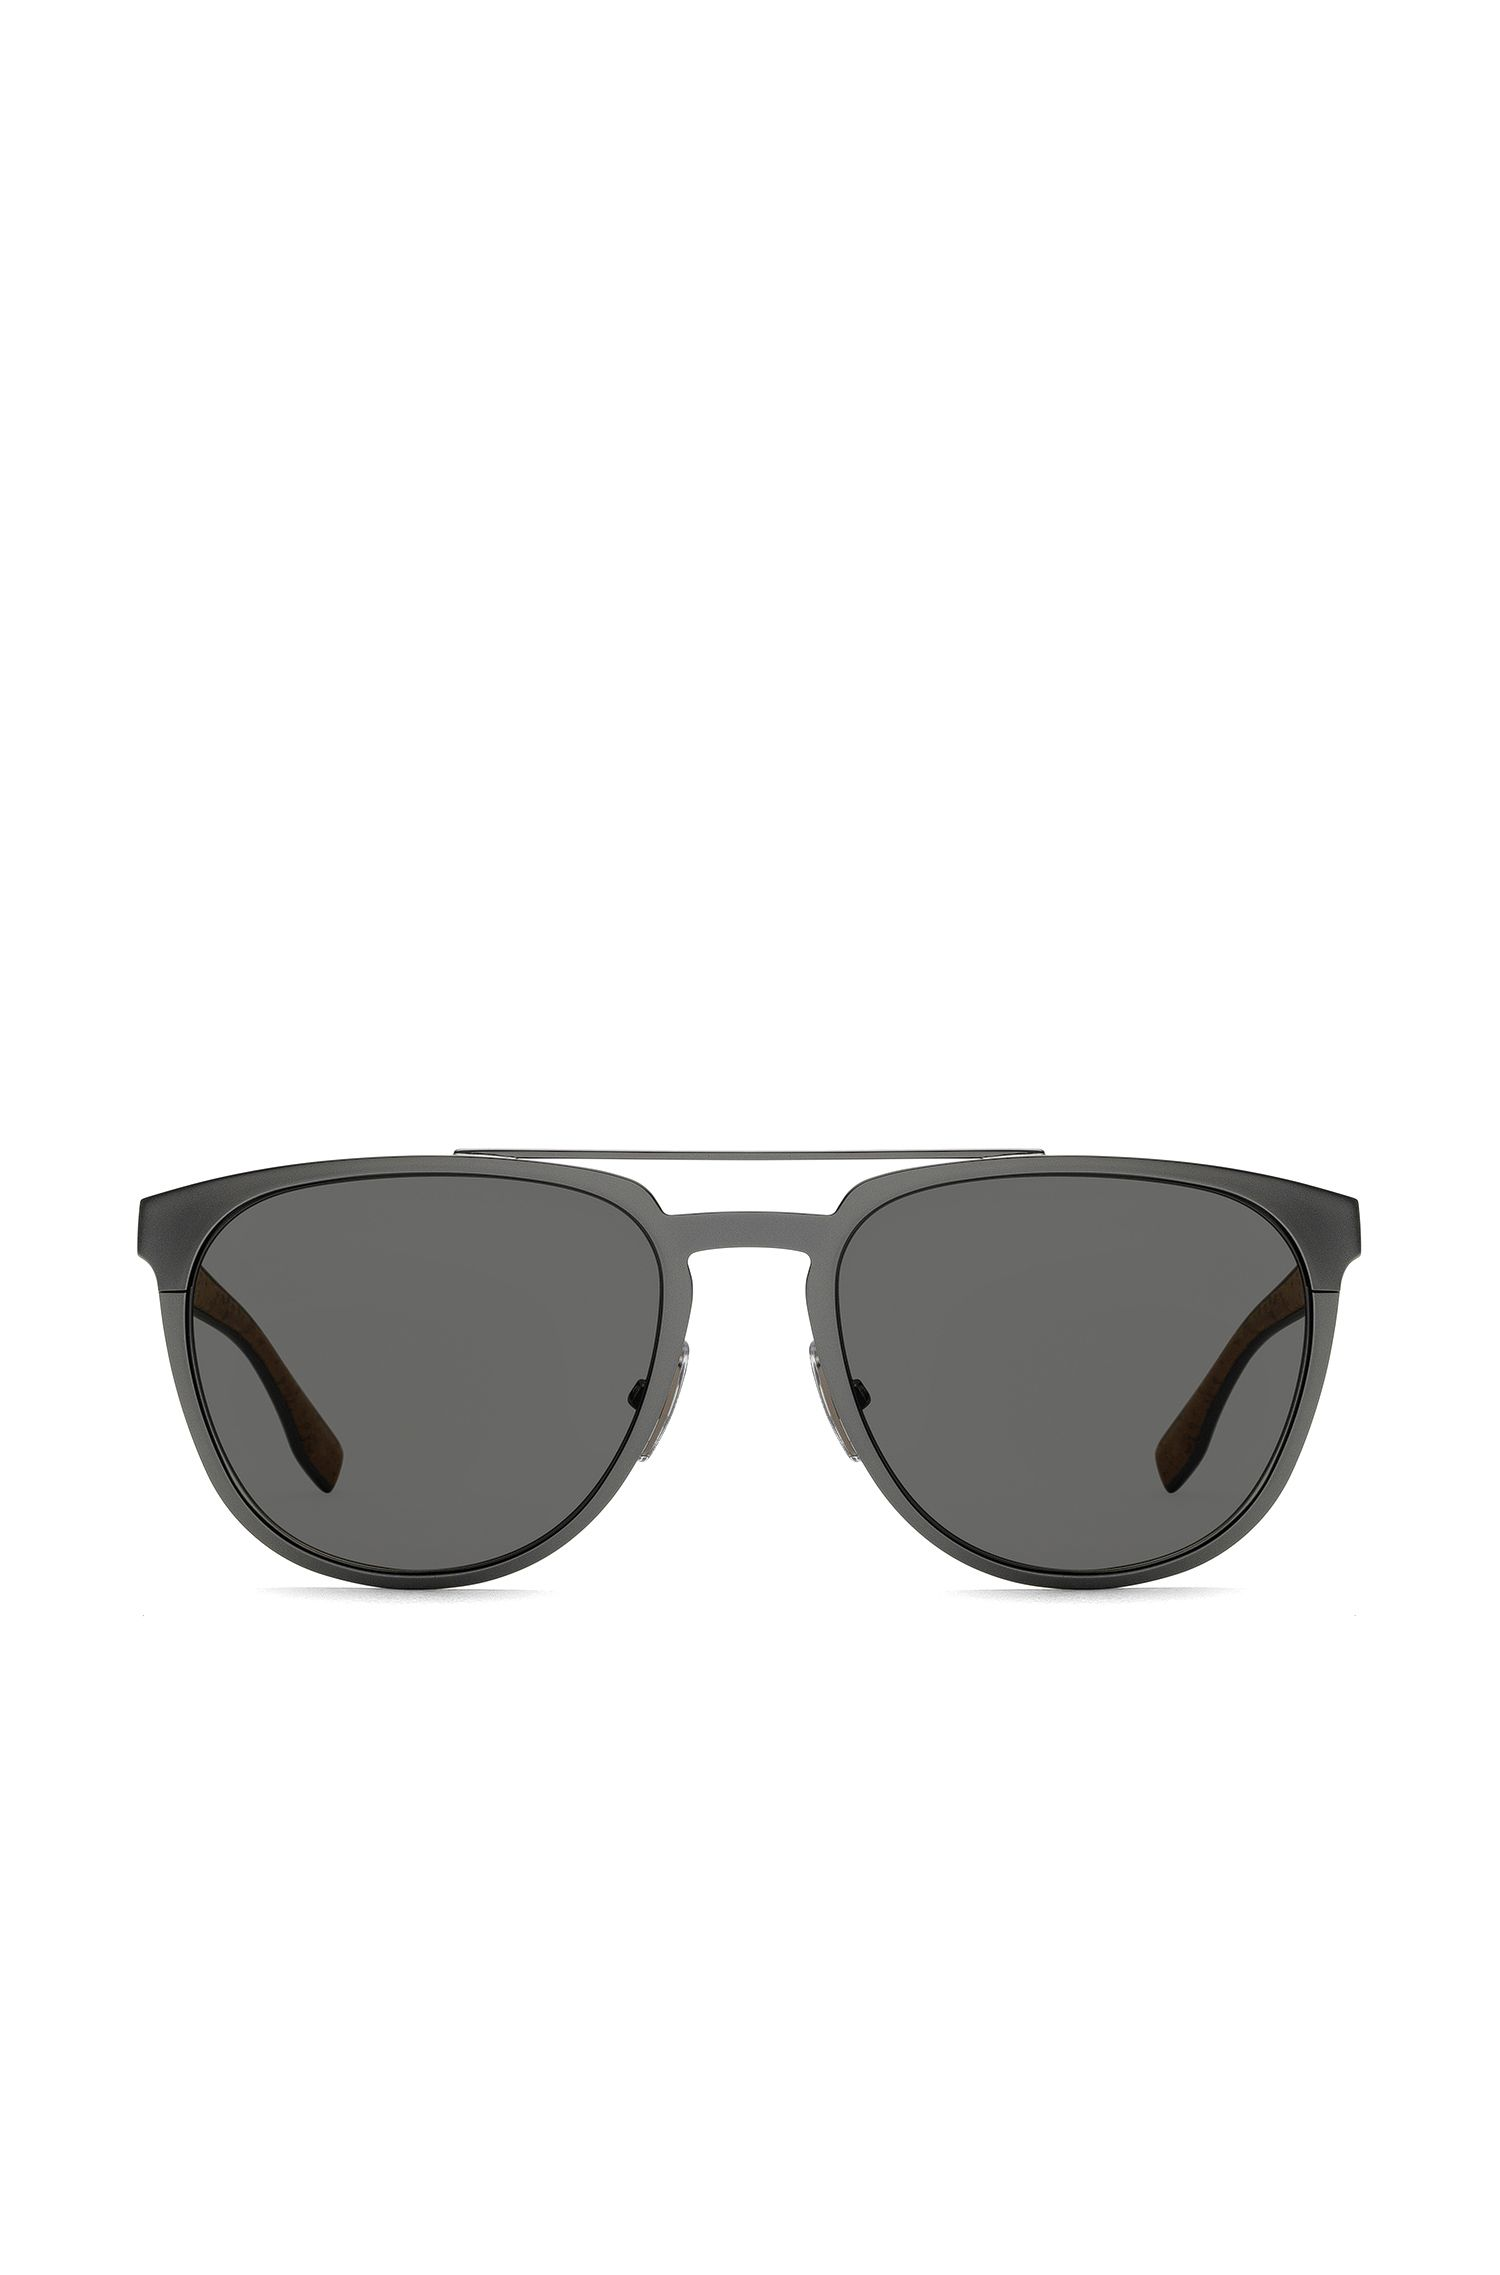 Silver Round Metal Sunglasses | BOSS 0882S, Assorted-Pre-Pack